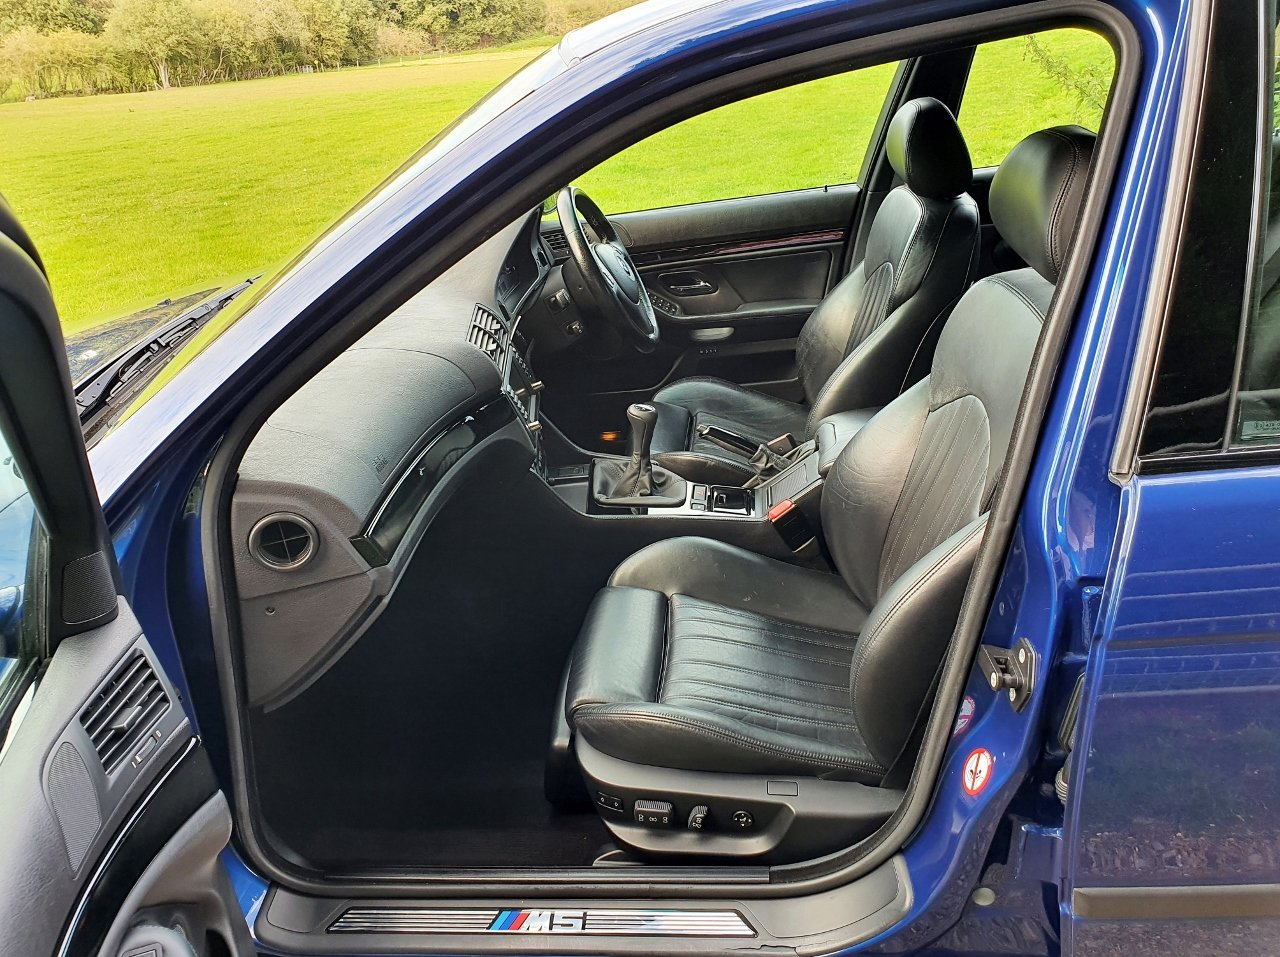 2001 Only 44,000 Miles - Le Mans Blue E39 M5 - Full History SOLD (picture 8 of 10)